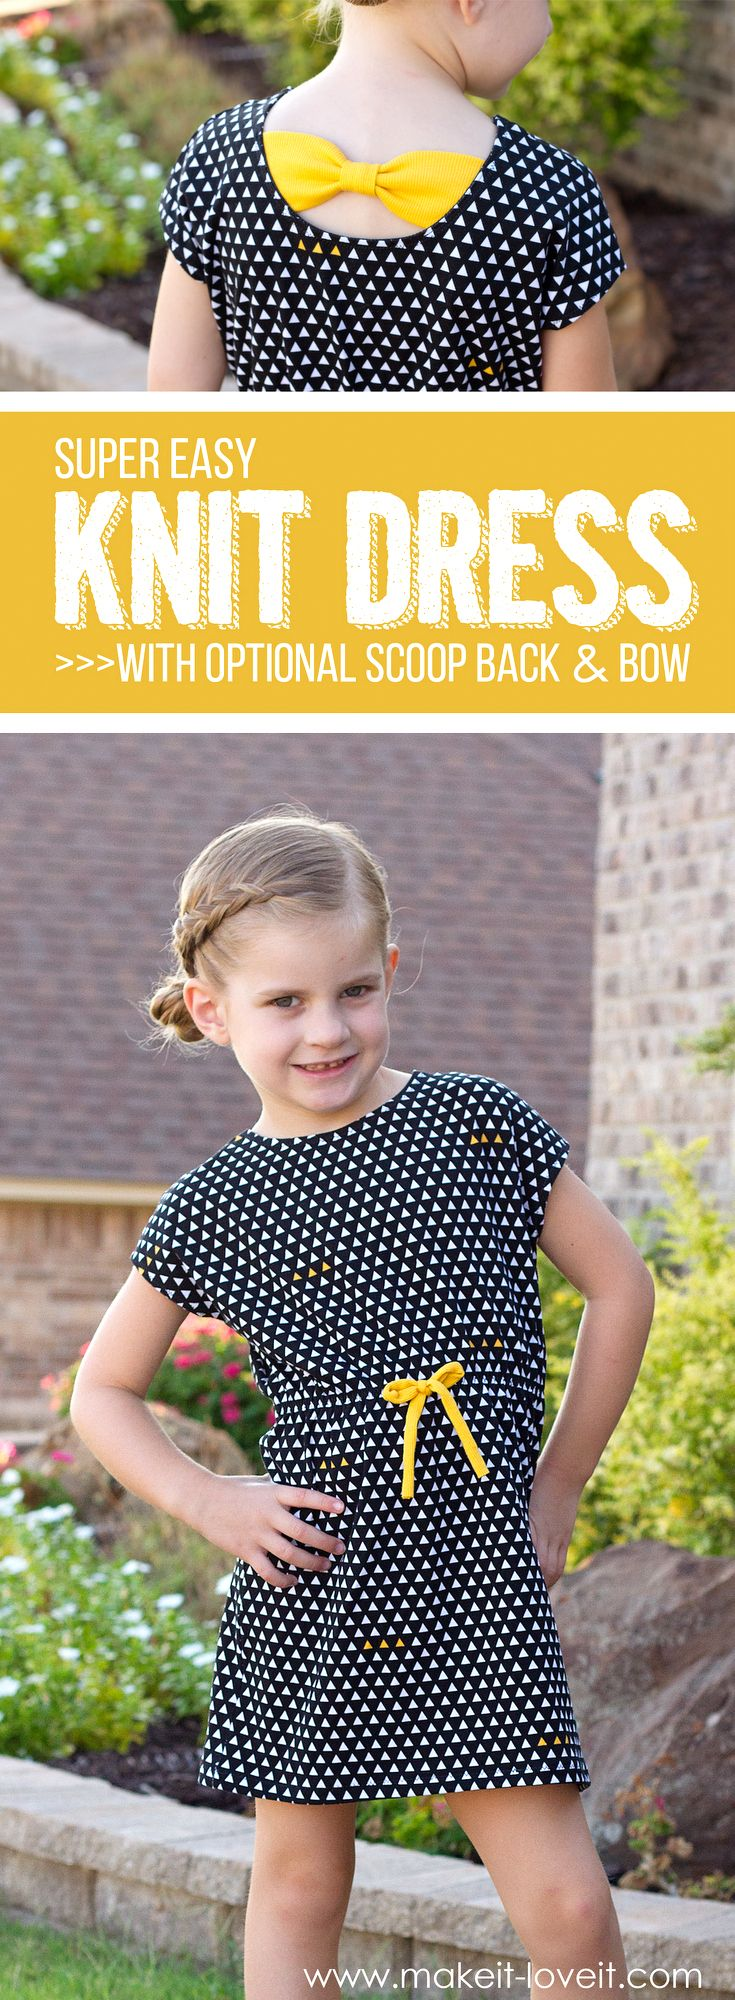 Super Easy Knit Dress...with optional Scoop-Back and Bow!   via www.makeit-loveit.com